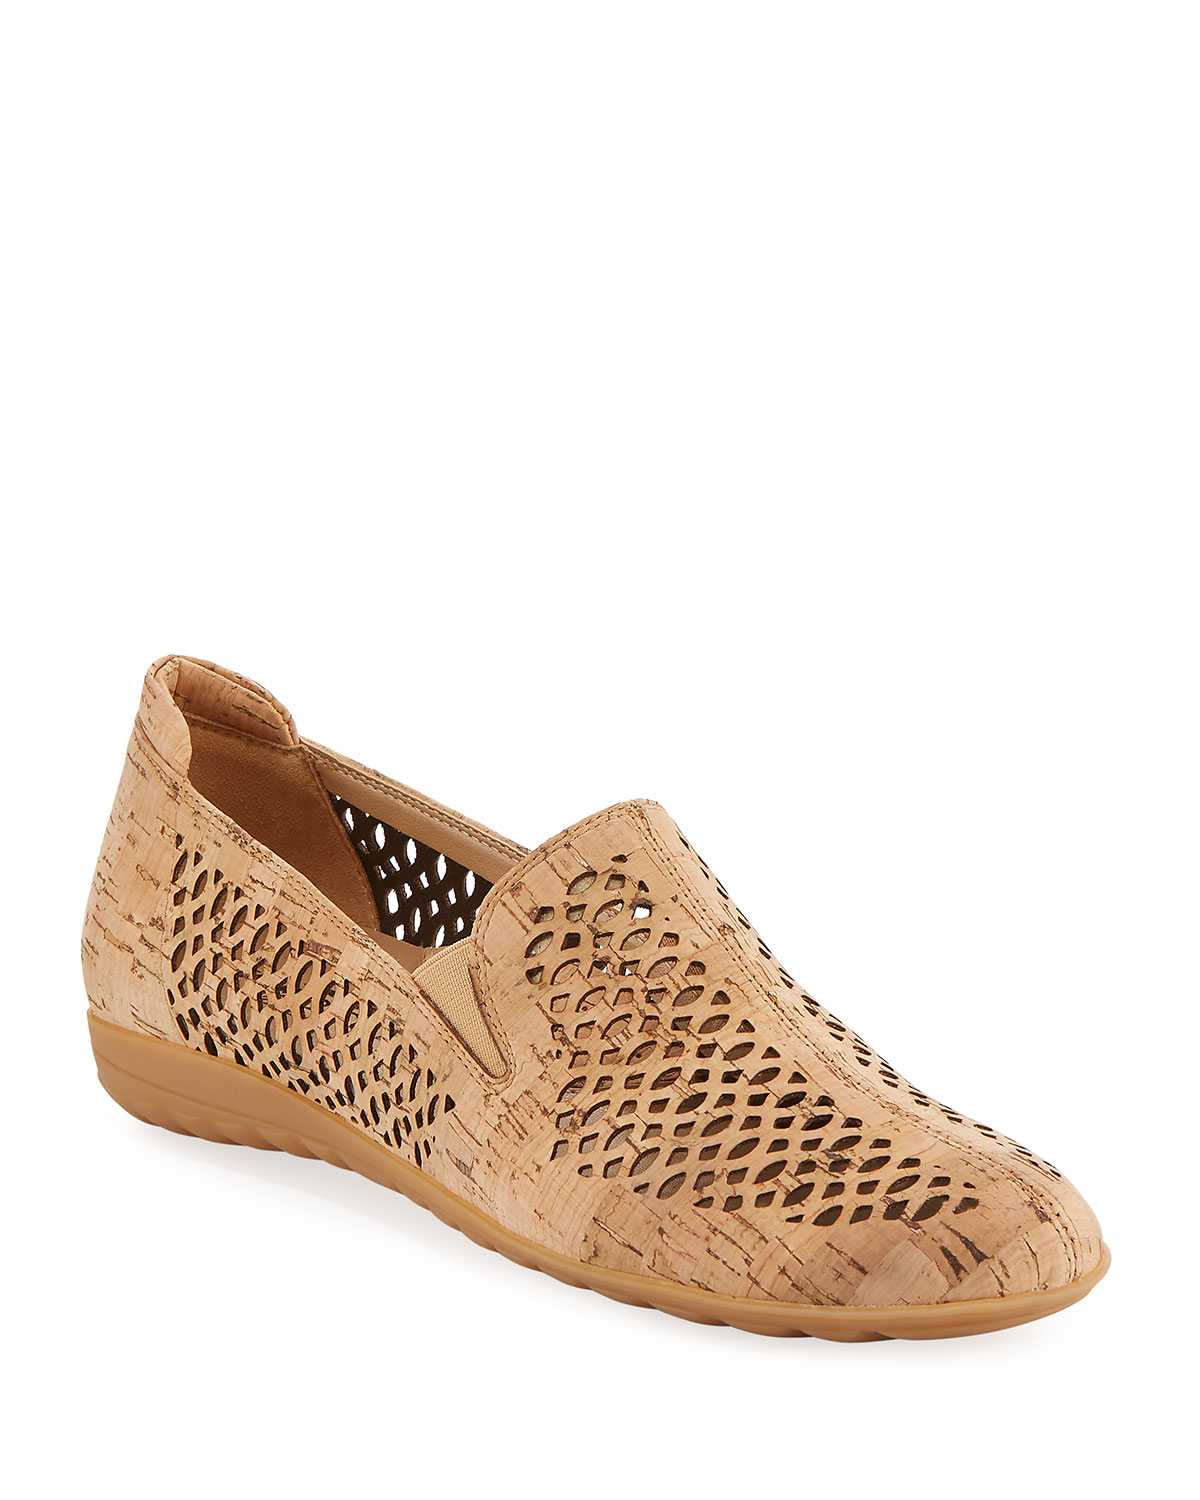 0406a3c985b SESTO MEUCCI Byra Perforated Cork Comfort Loafer